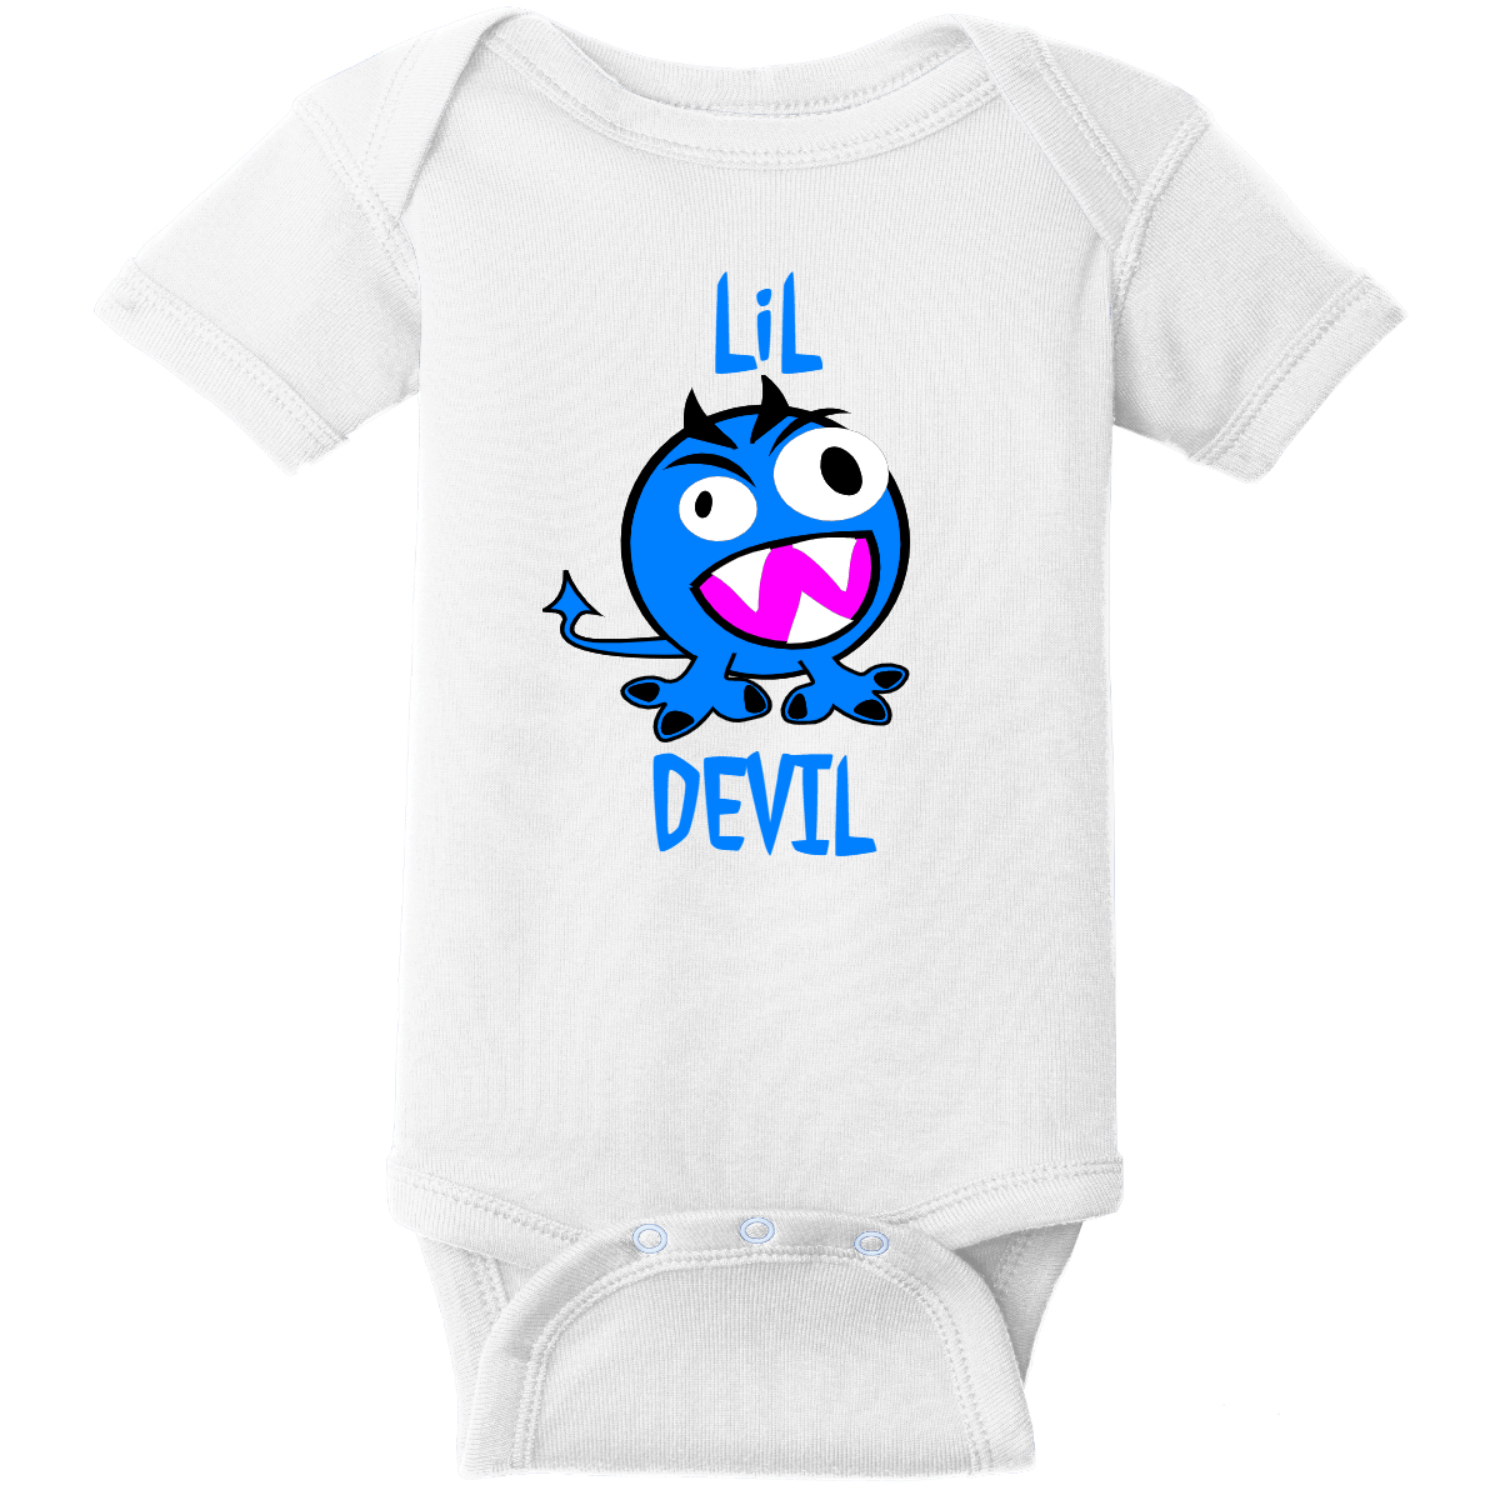 Lil Devil Monster Baby Bodysuit White Rabbit Skins Infant Short Sleeve Infant Rib Bodysuit RS4400